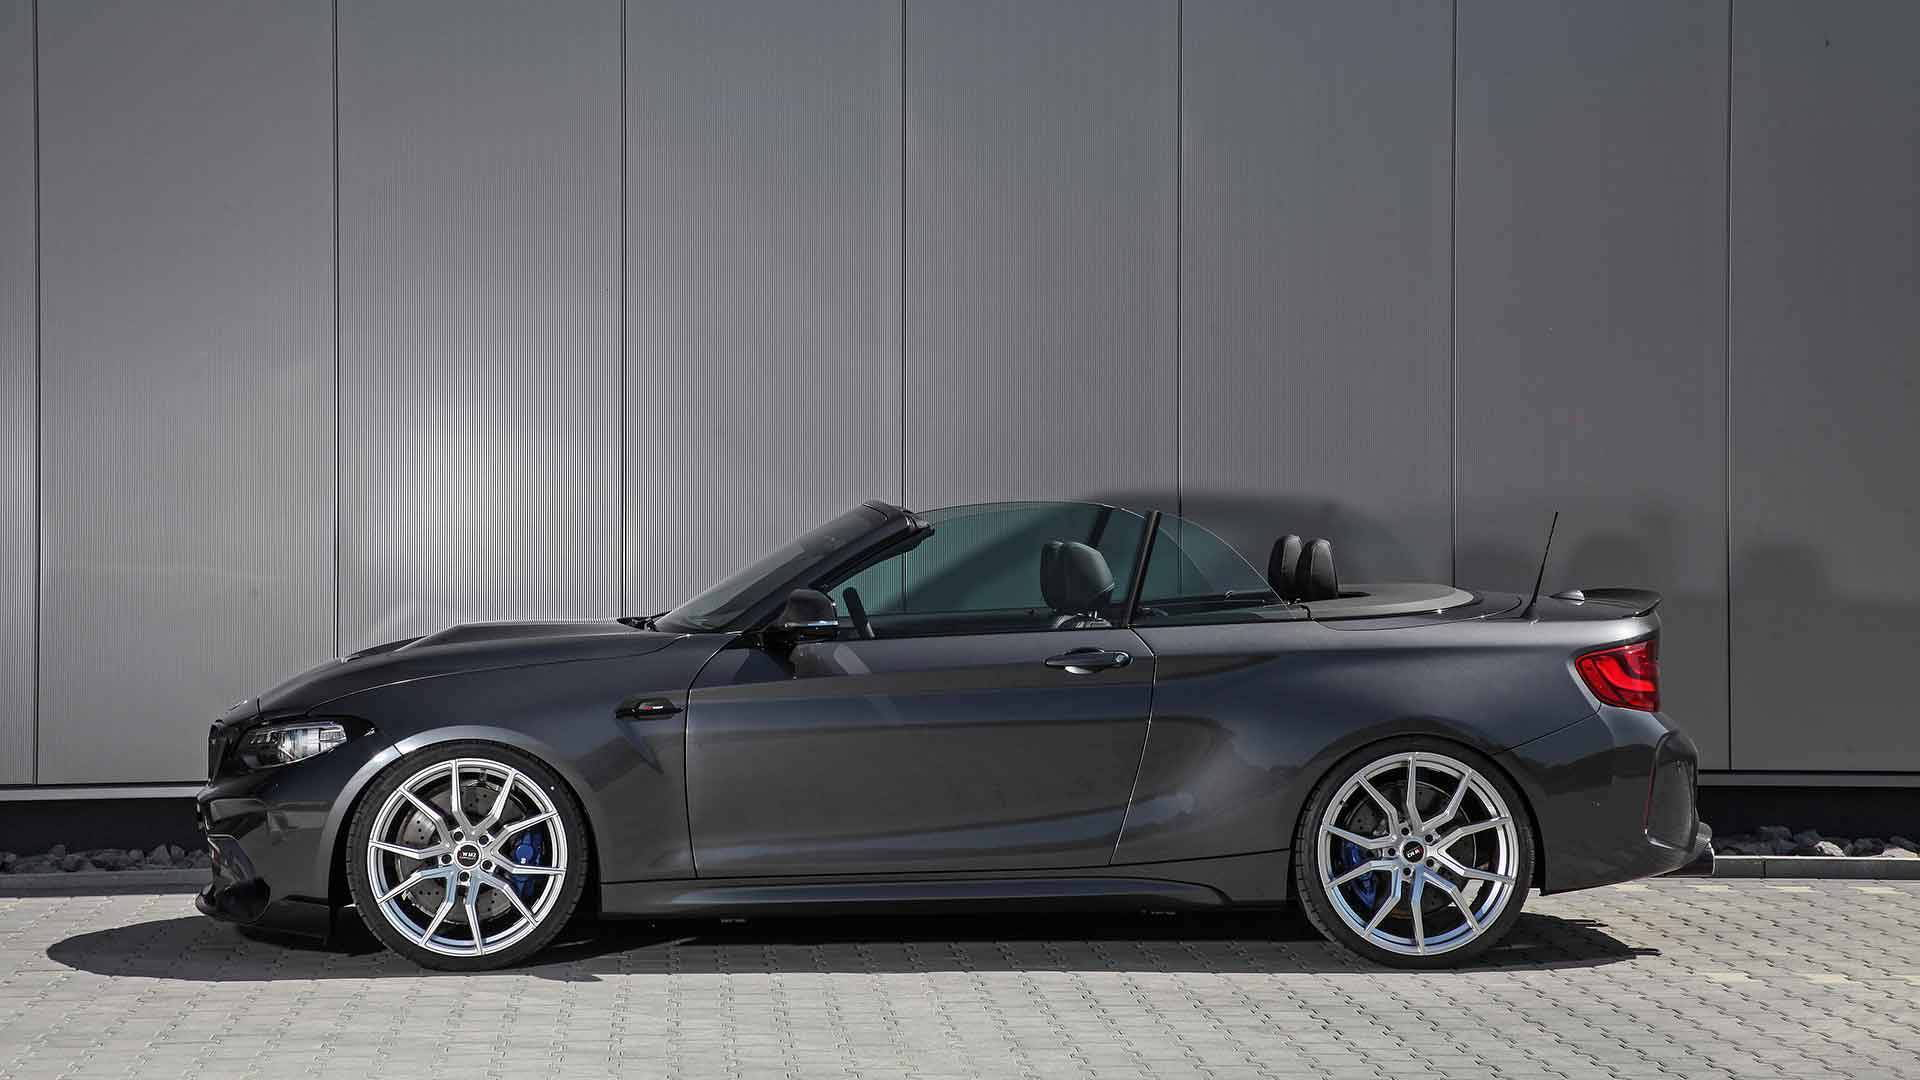 But Convertible Bmw Won T Make An M2 Convertible But This German Company Did